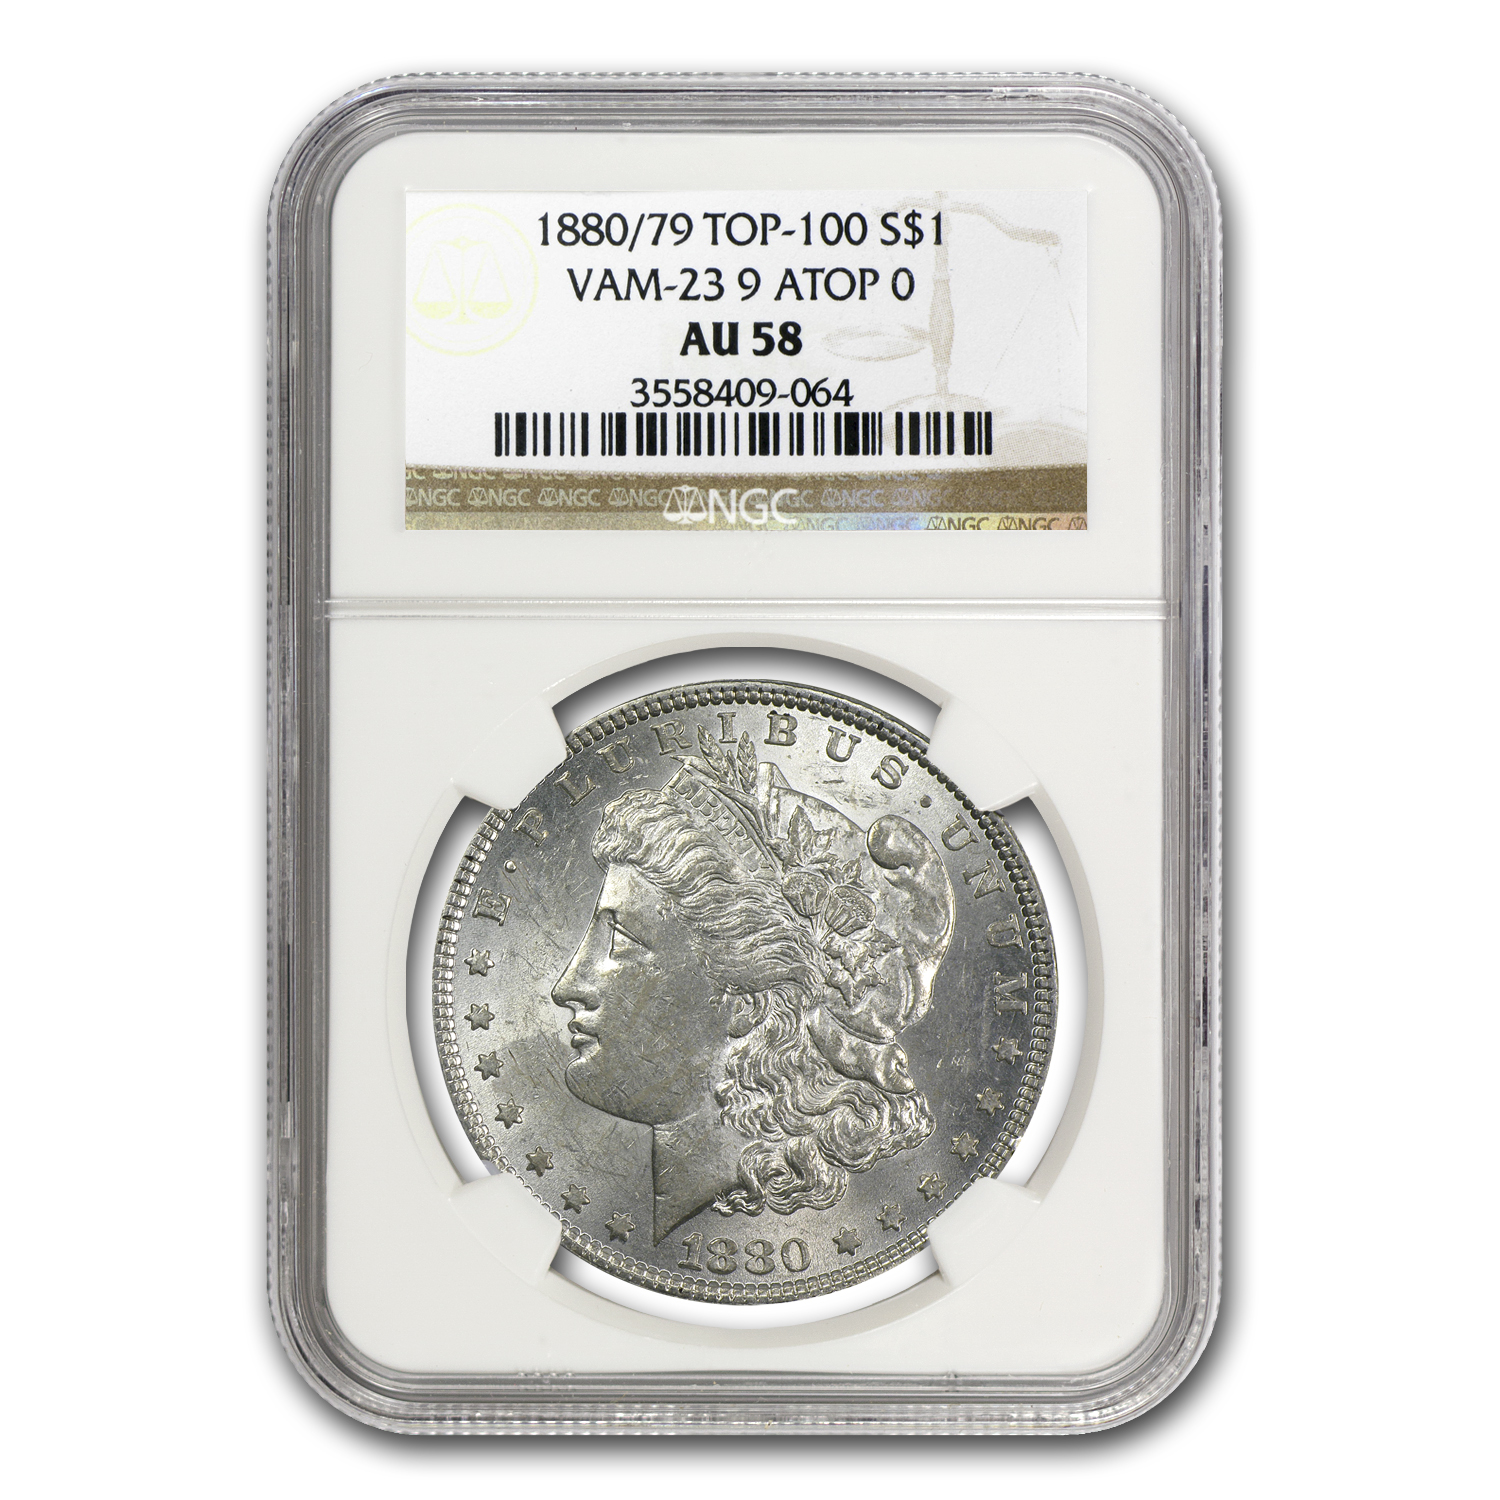 1880/79 Morgan Dollar AU-58 NGC - VAM-23 80/79 Overdate Top-100